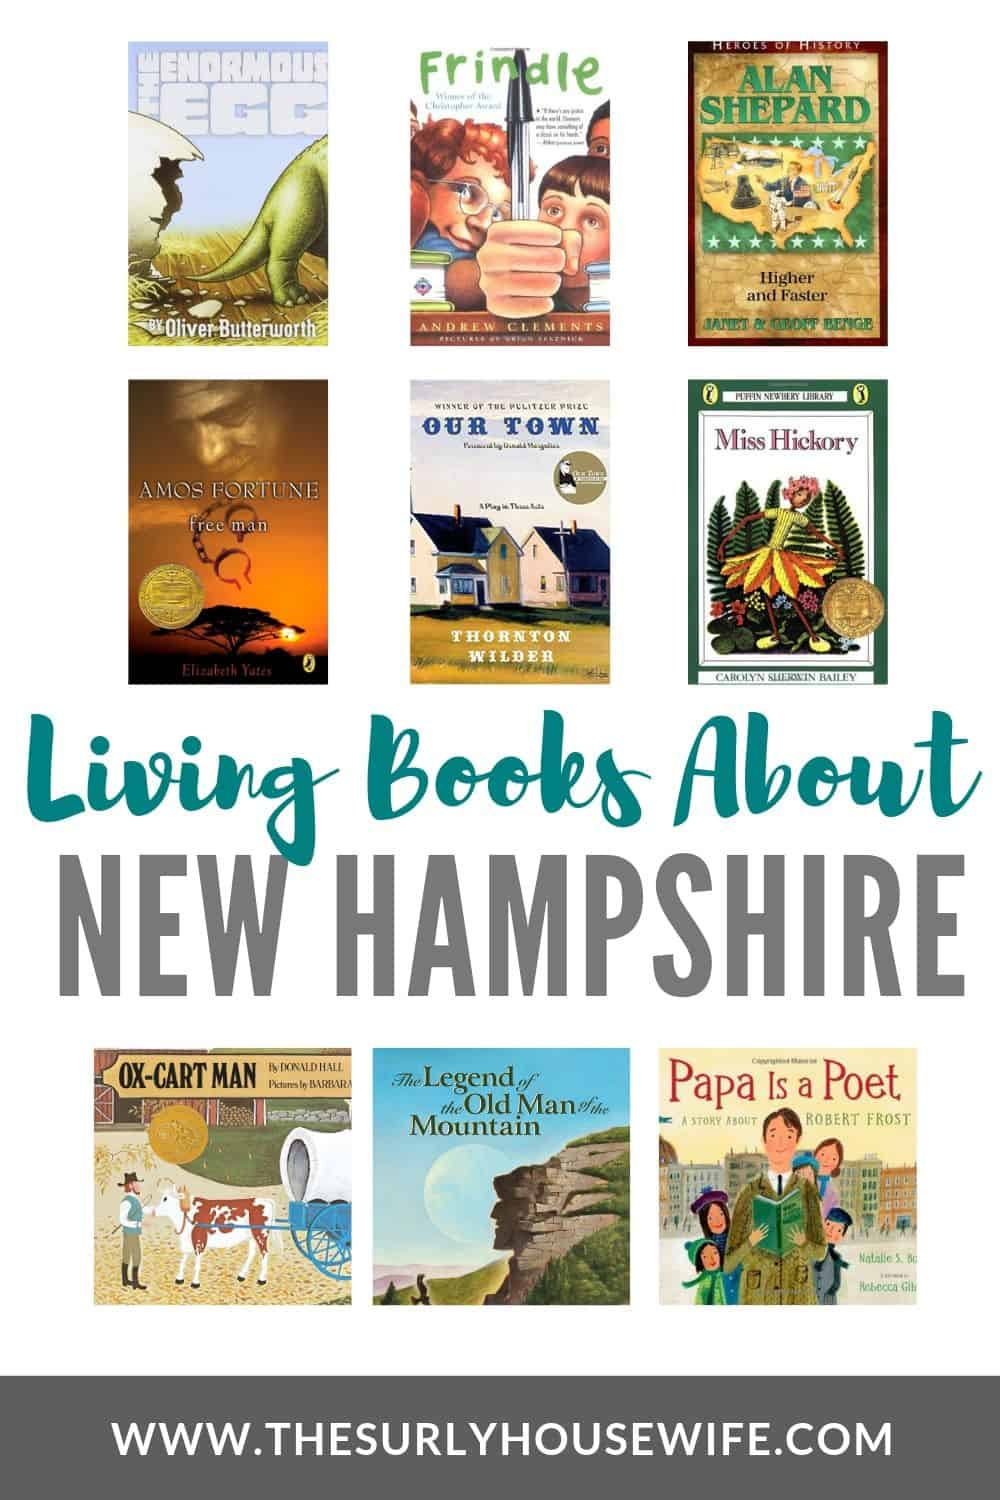 Searching for children's books about New Hampshire? This post has books featuring New Hampshire, New Hampshire history, and famous authors from the state.